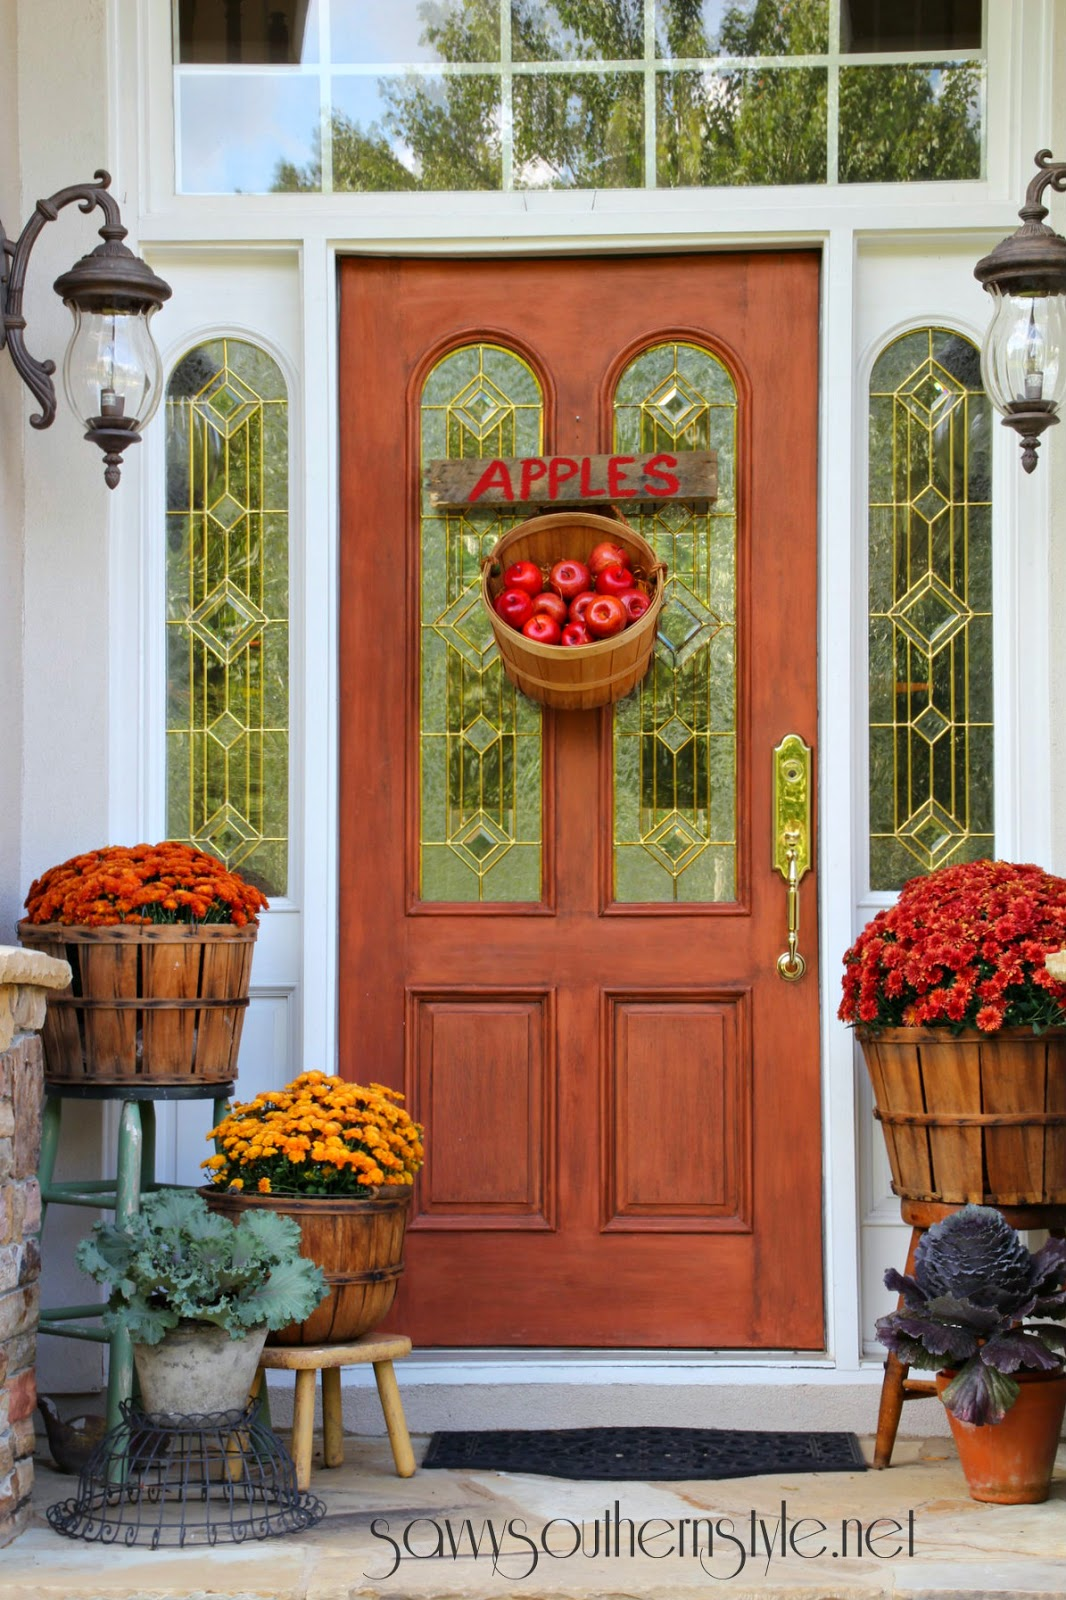 Basket of Fruits | Easy Fall Door Decorations You Can DIY on a Budget | fall door decorations | fall door wreath